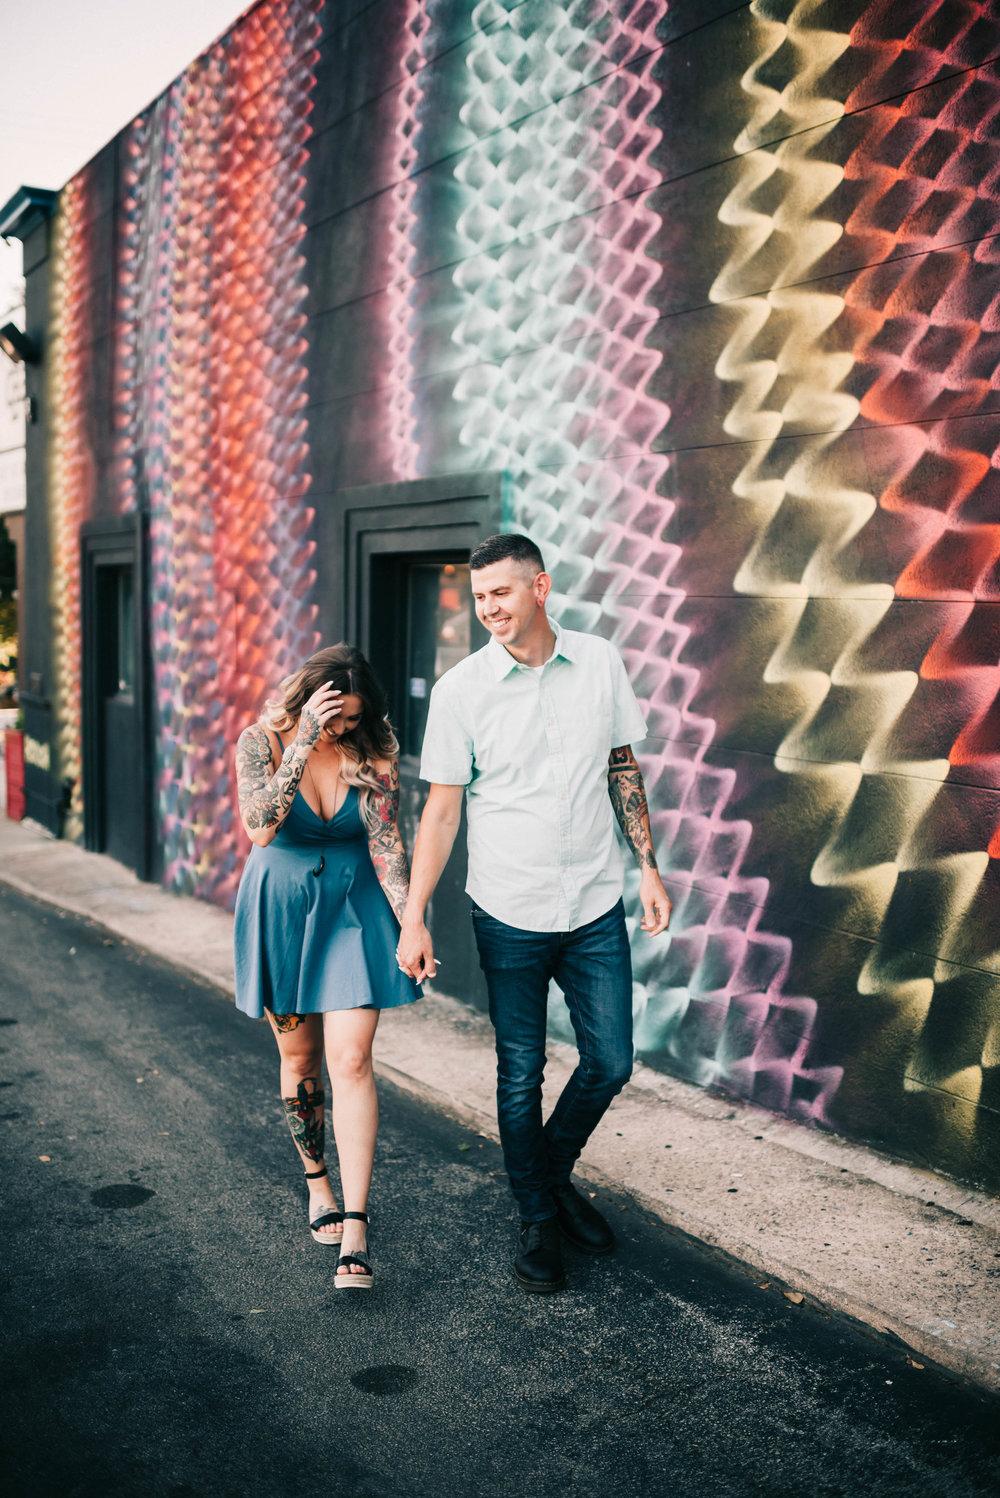 atlanta georgia san francisco california bay area sf oakland wedding portrait adventure engageement nontraditional tattooed couple photographer-14.jpg